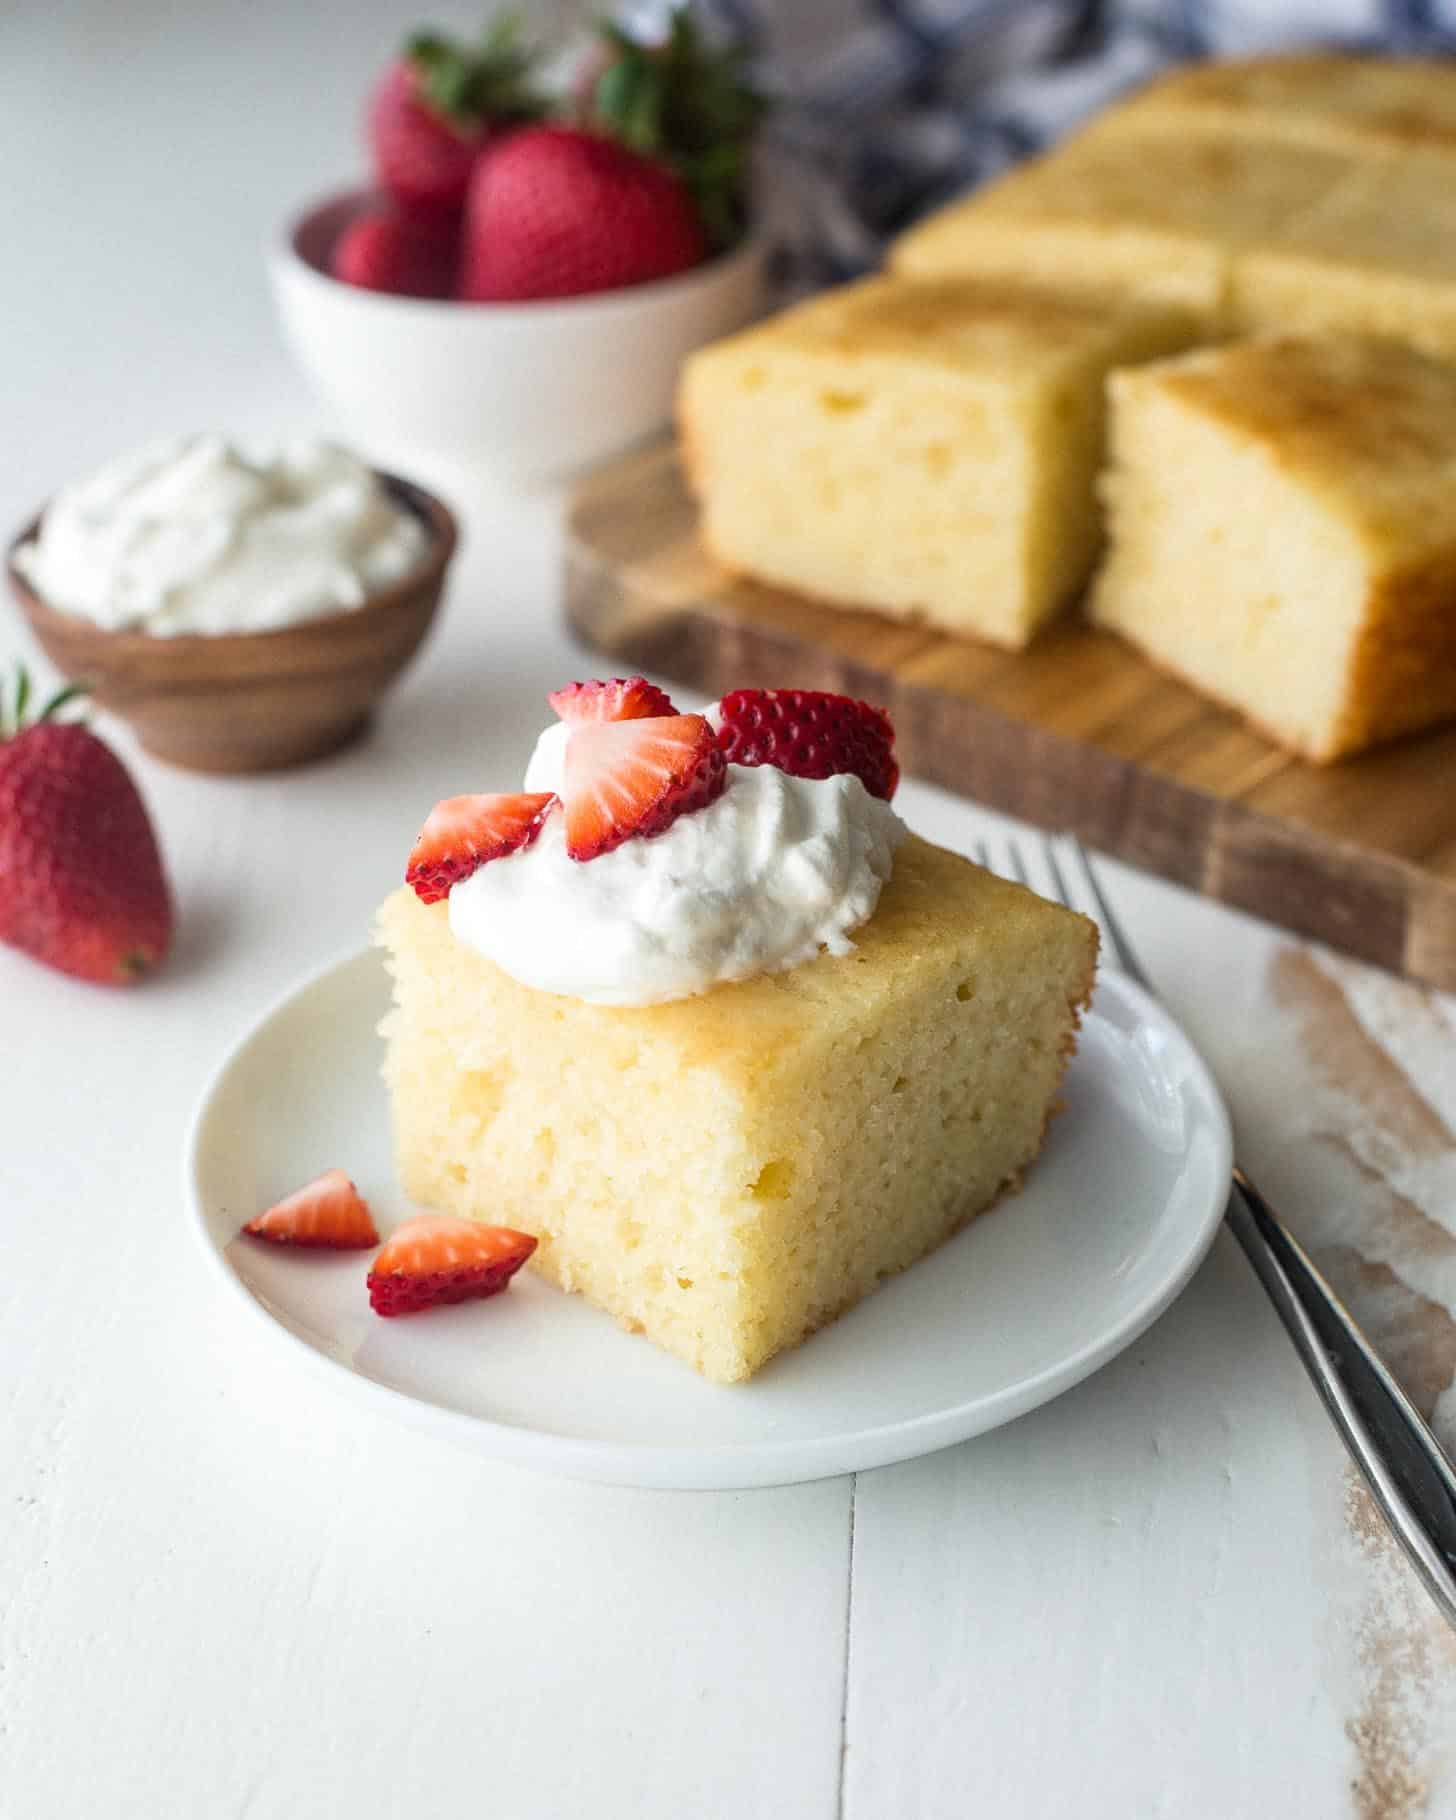 semolina yogurt cake topped with whipped cream and berries